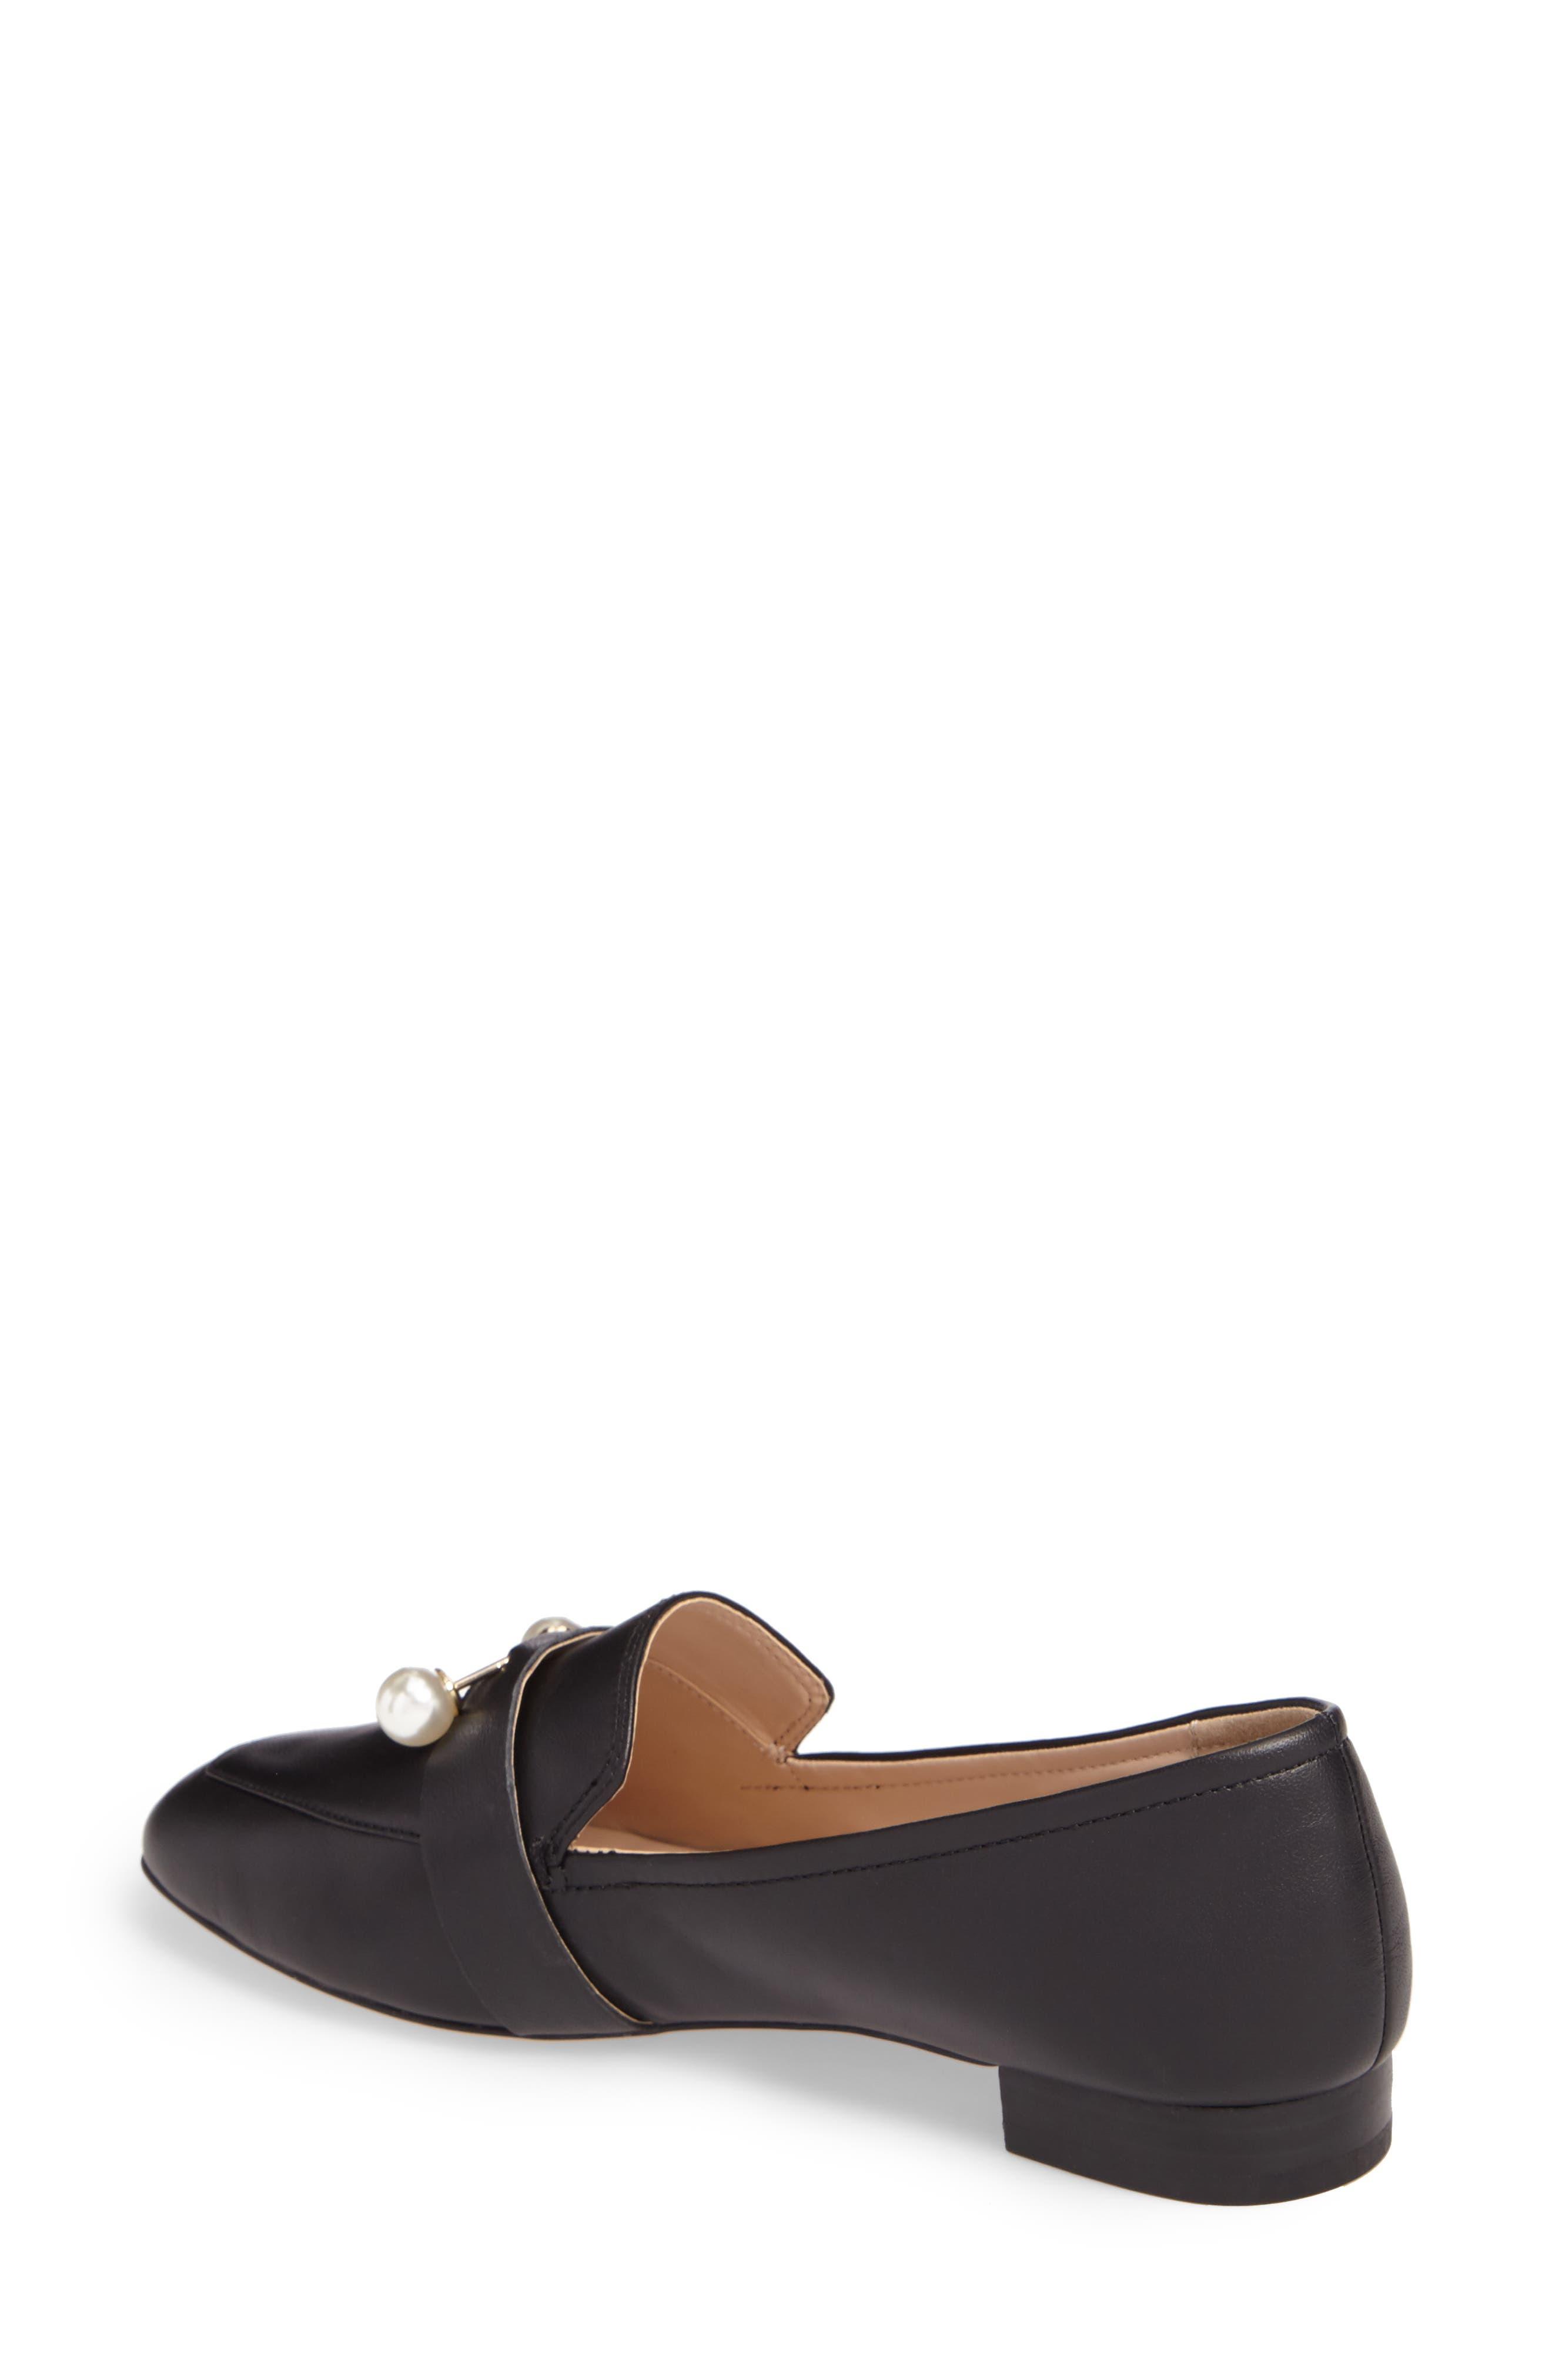 Caspar Loafer,                             Alternate thumbnail 5, color,